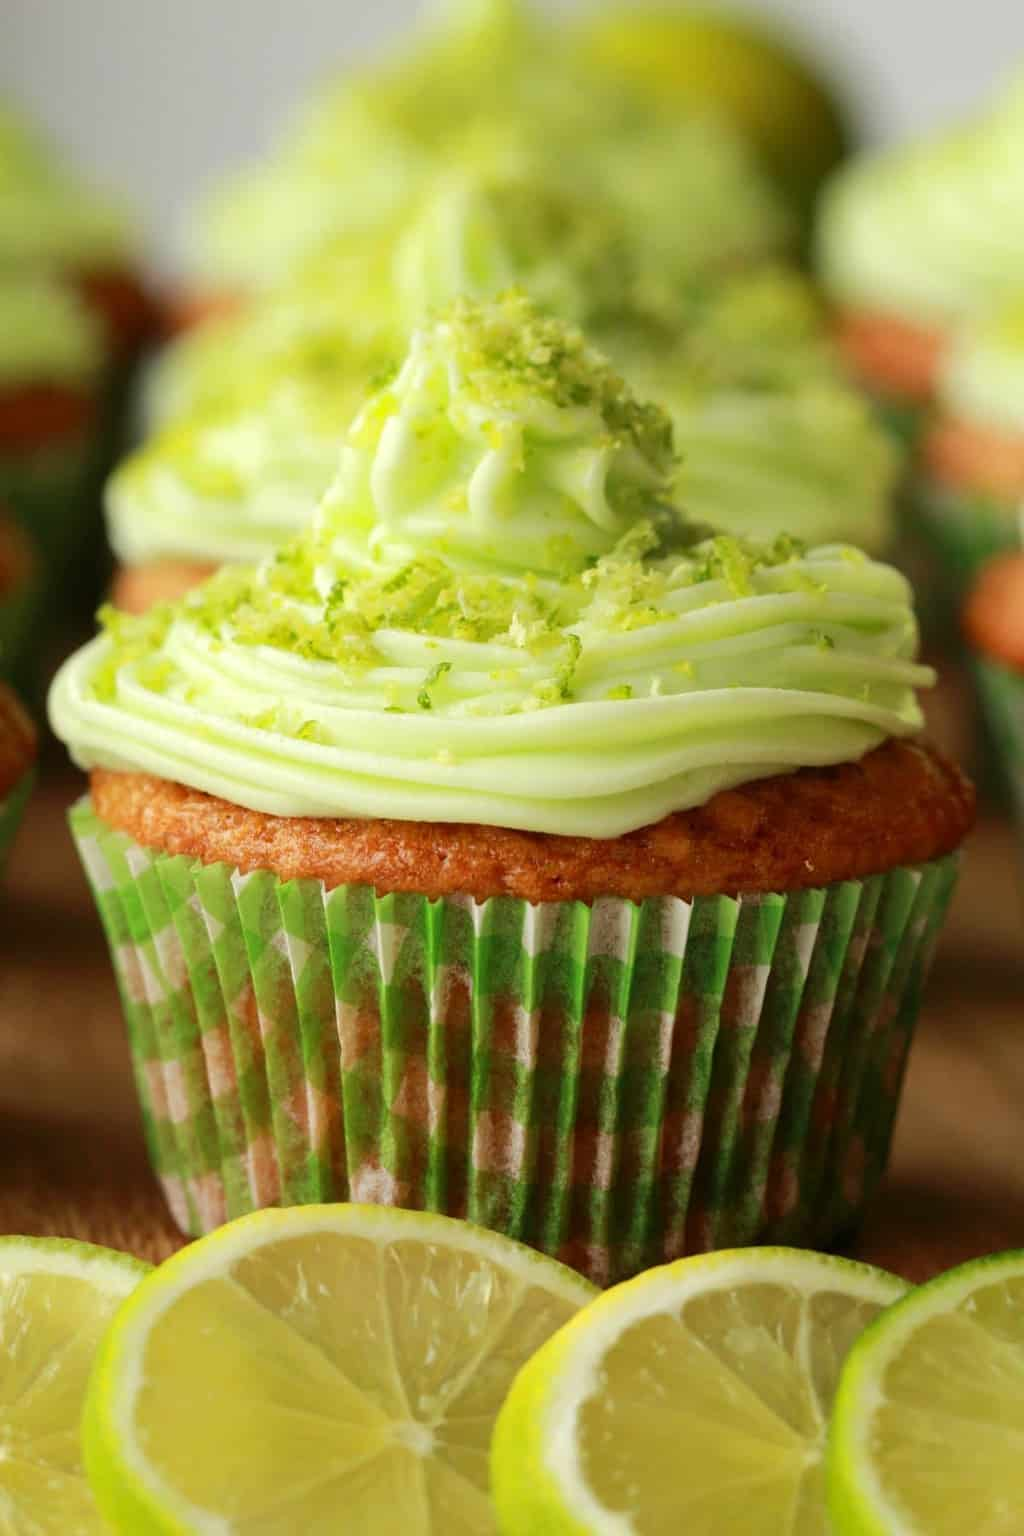 Close up of Vegan Key Lime Cupcake on wooden board with lime slices in the foreground